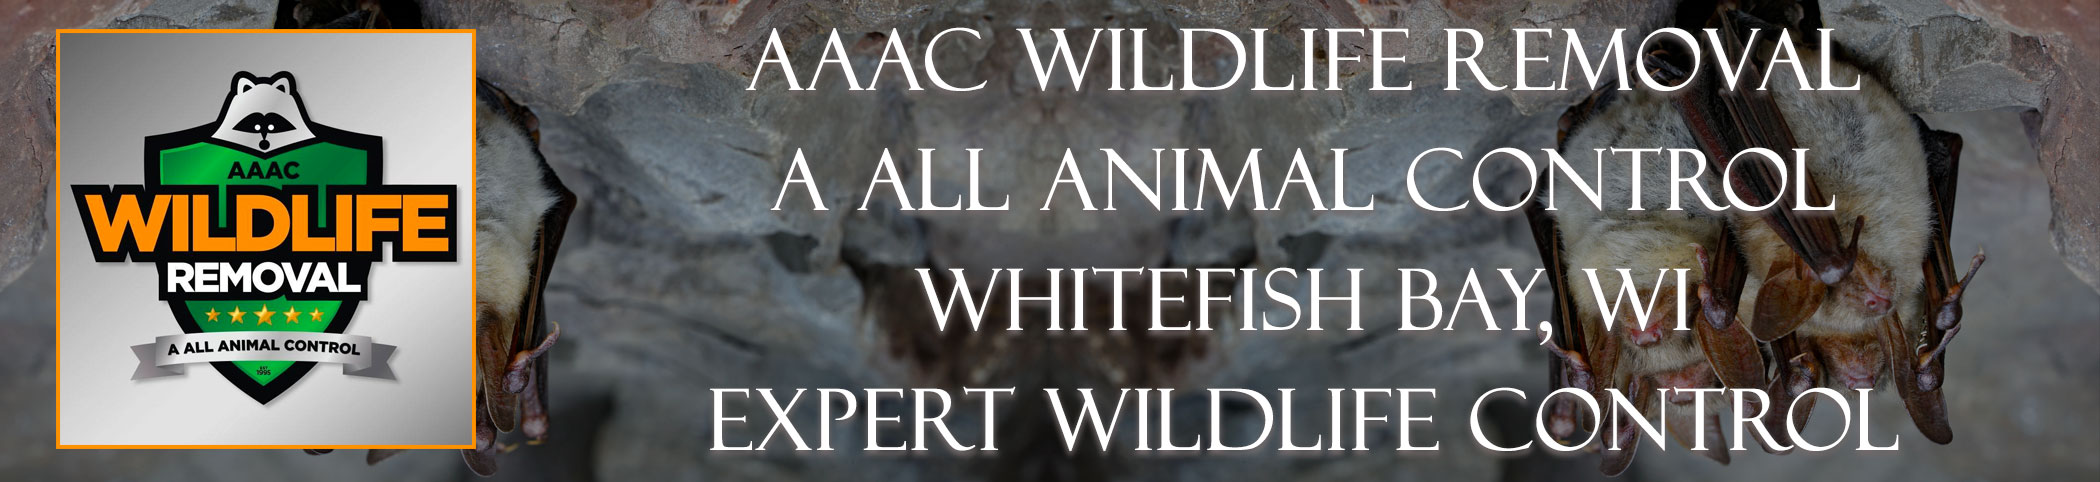 aaac-wildlife-removal-Whitefish Bay-wisconsin